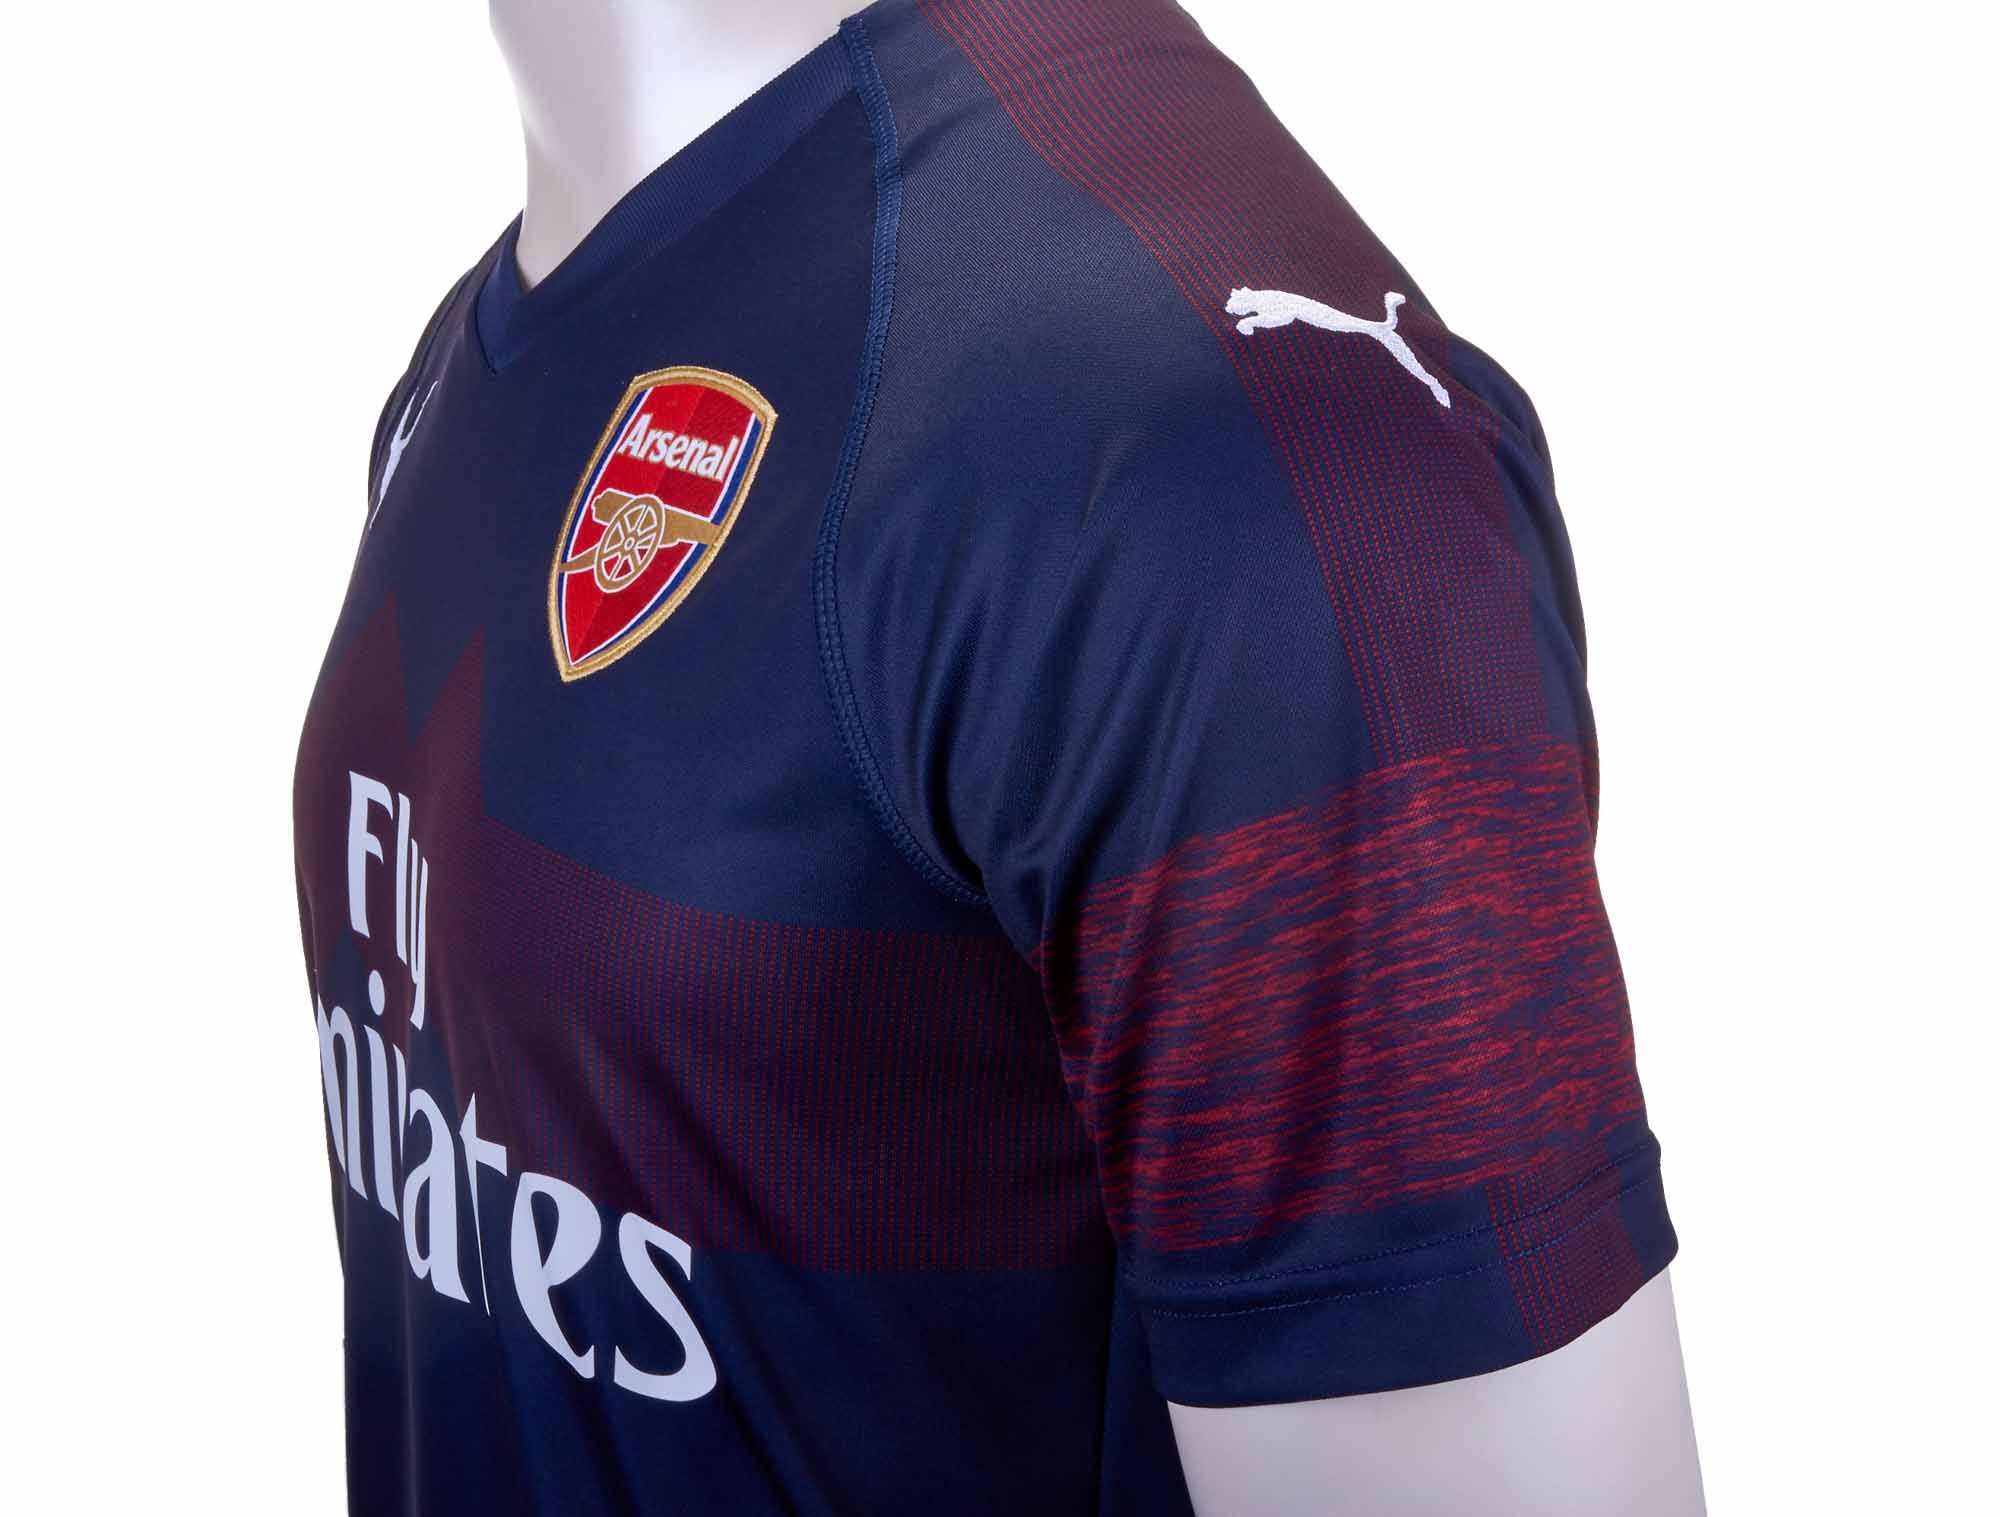 731848d71 PUMA Arsenal Away Jersey - Peacoat/High Risk Red - Soccer Master